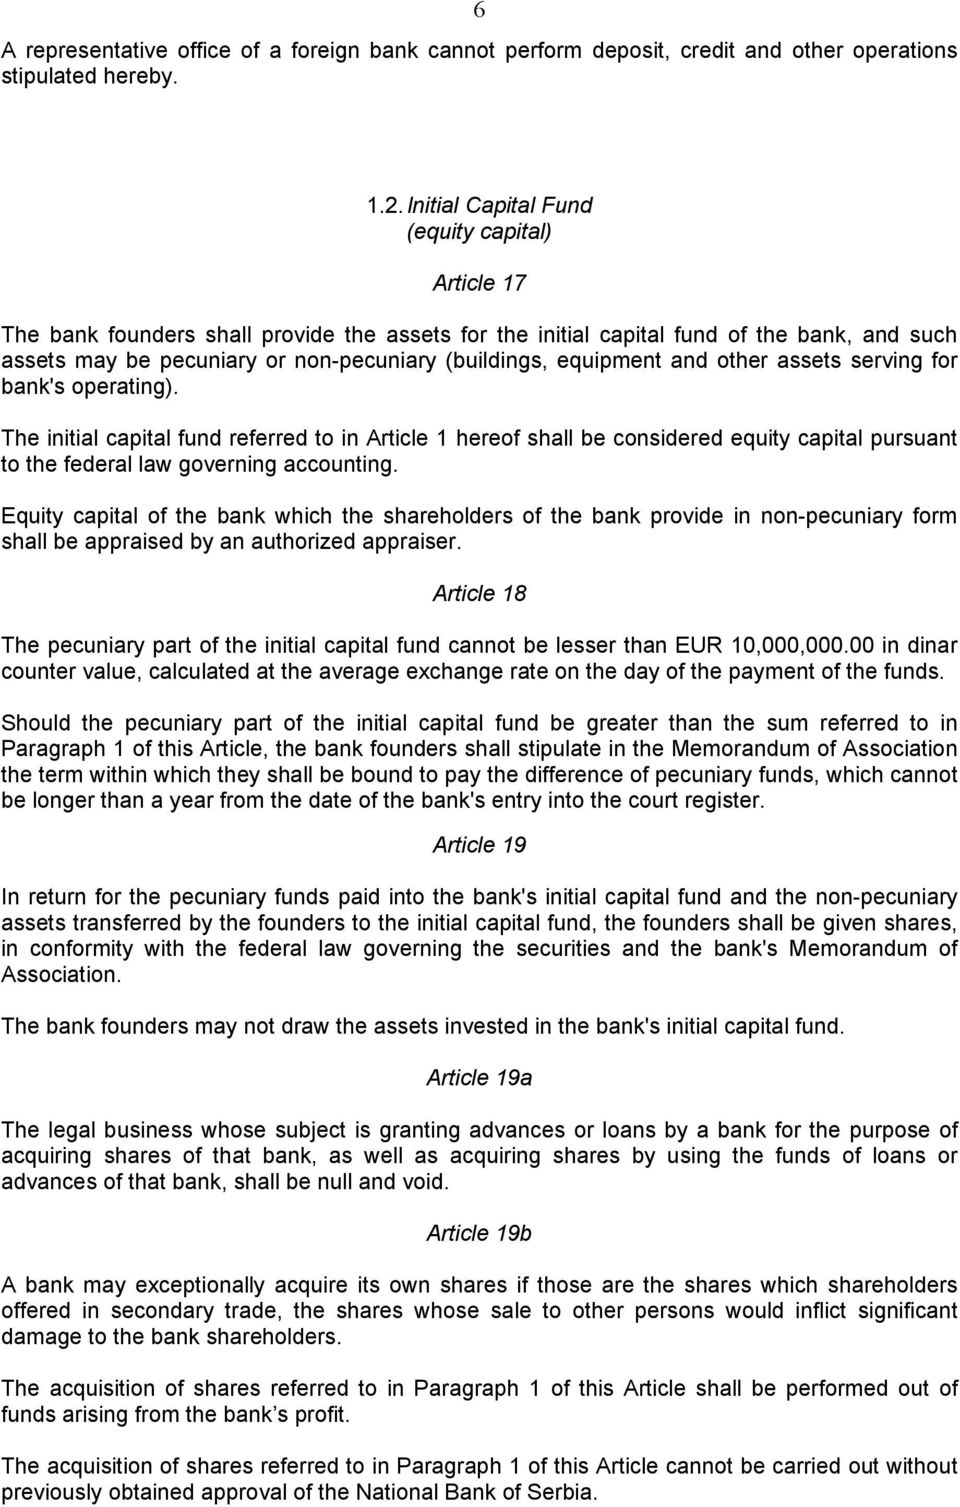 equipment and other assets serving for bank's operating). The initial capital fund referred to in Article 1 hereof shall be considered equity capital pursuant to the federal law governing accounting.